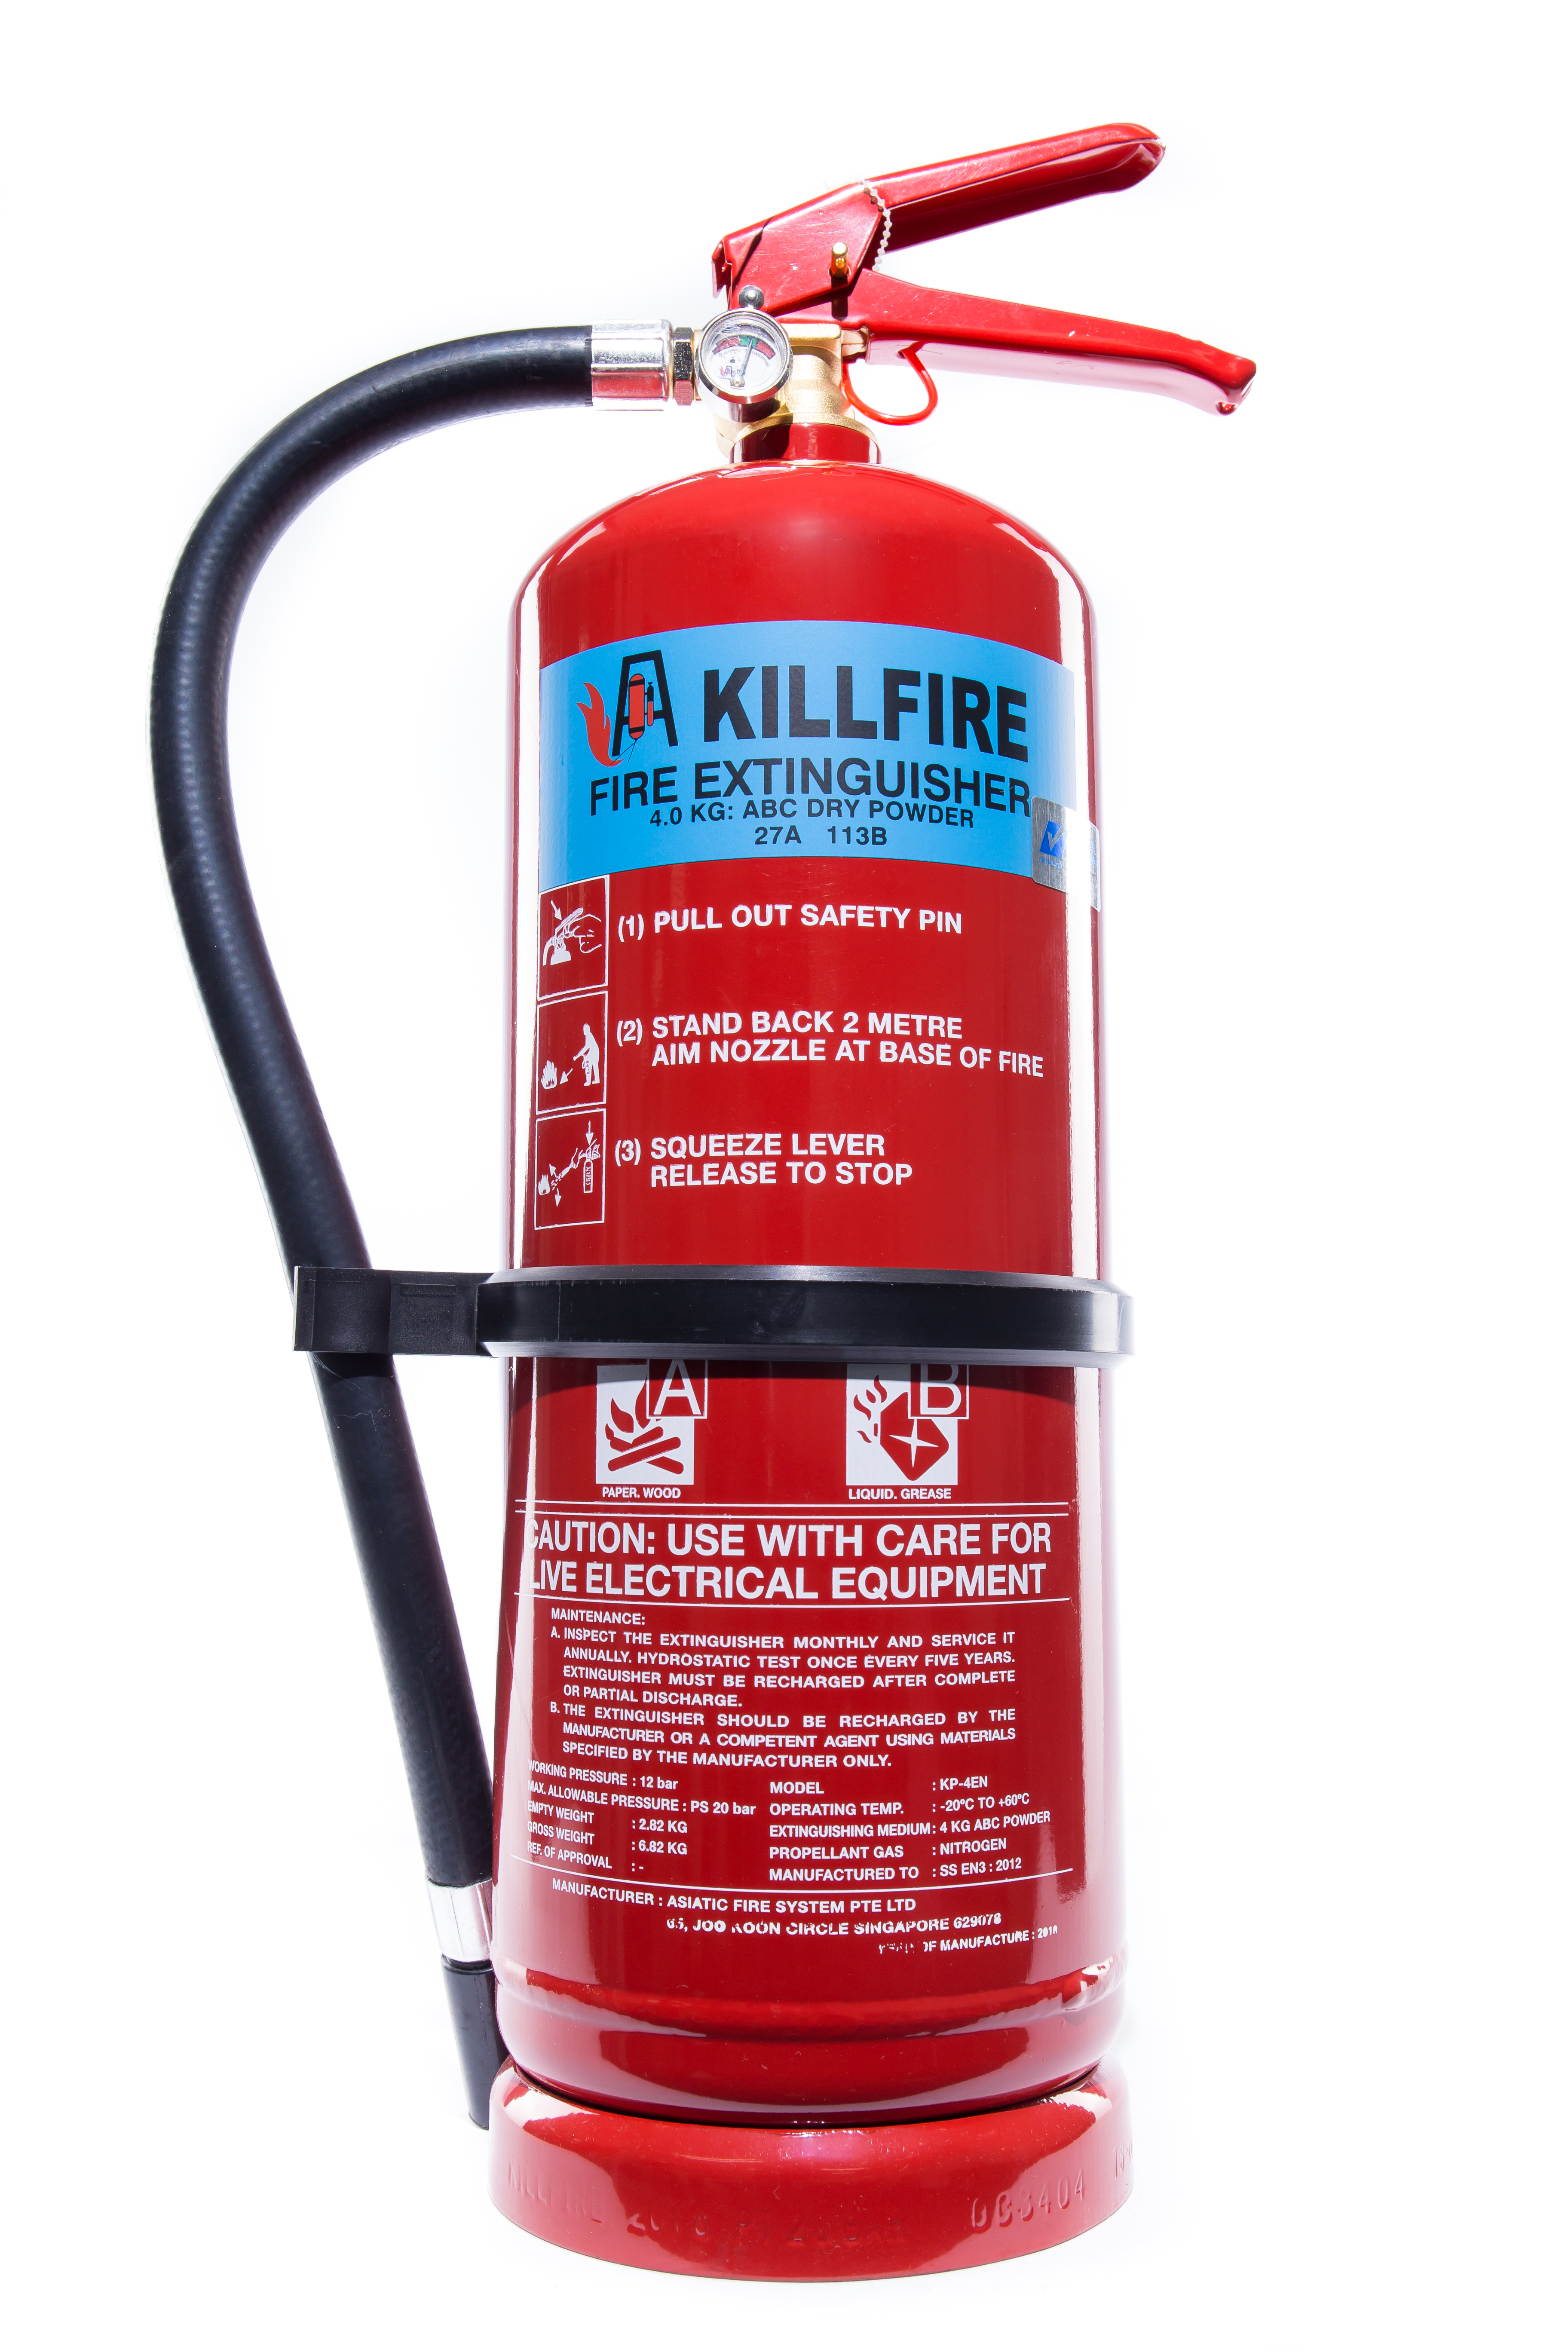 Killfire Fire Extinguisher 4KG